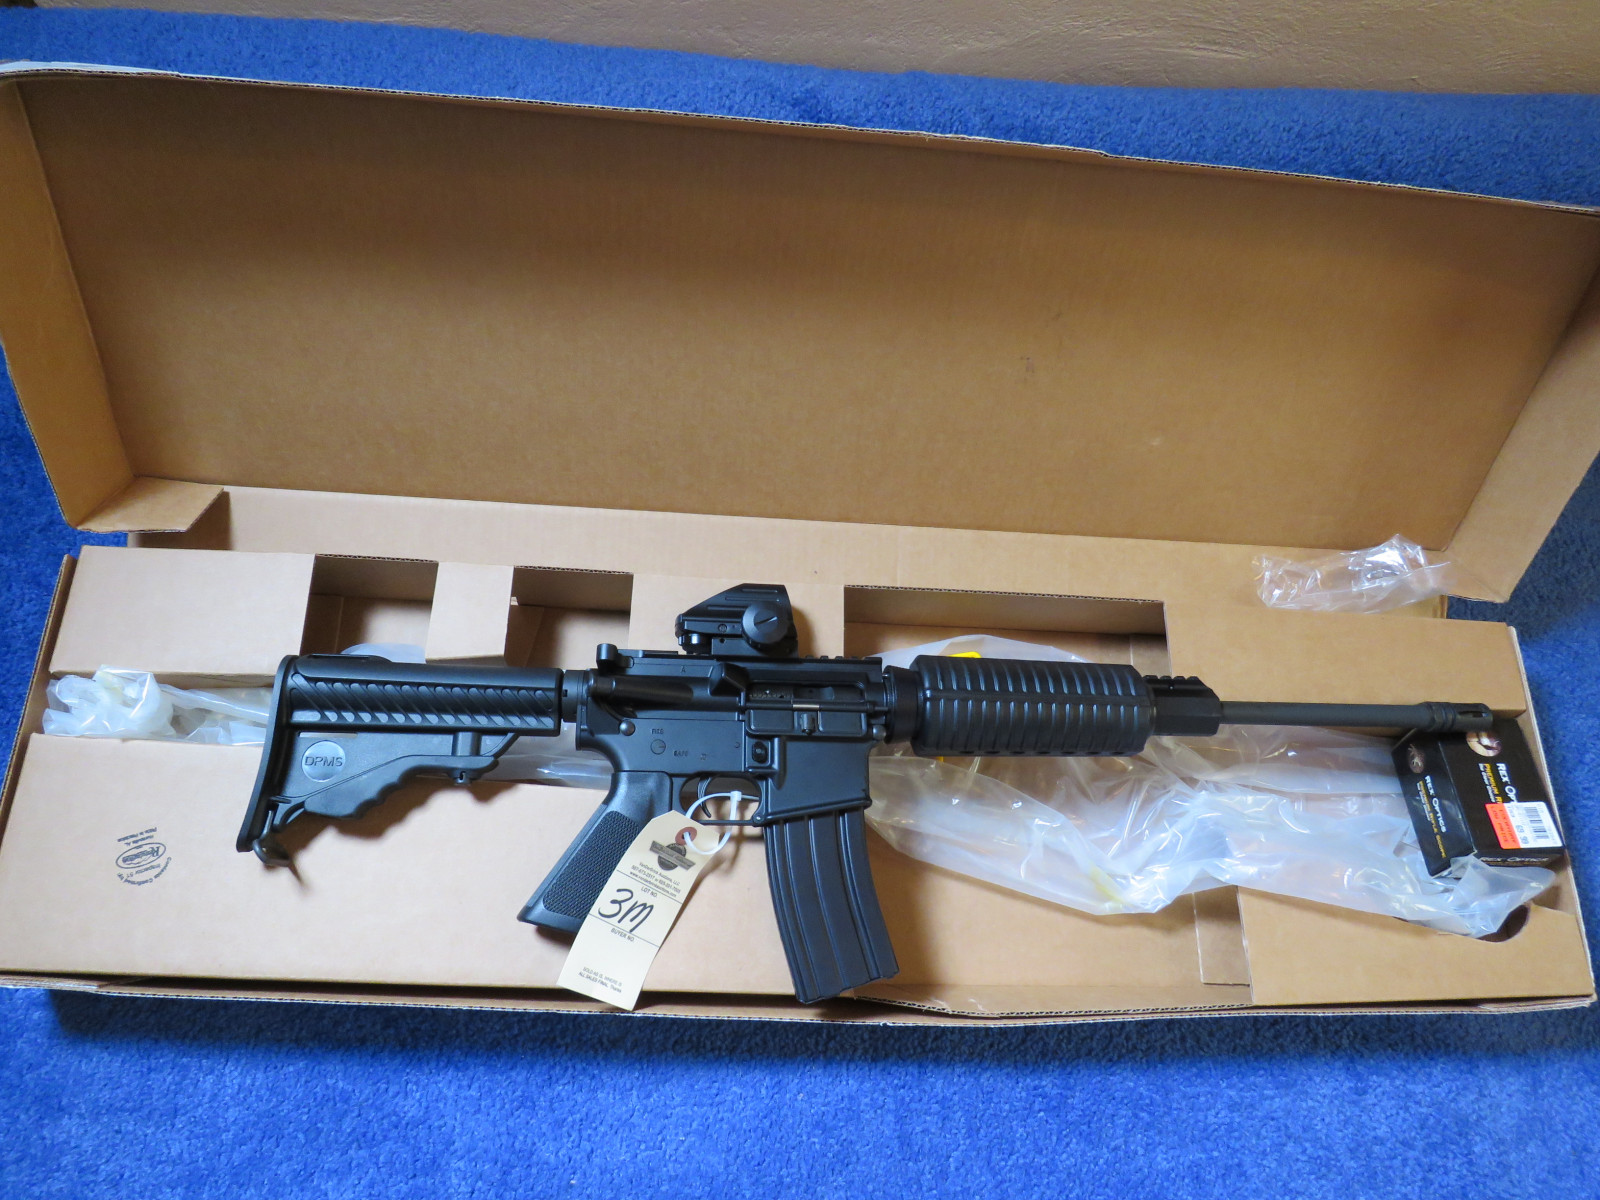 DPMS Panther Arms Model A-15 Type Semi-Automatic Sporting Rifle NIB NF  FFH068974 - Image 4